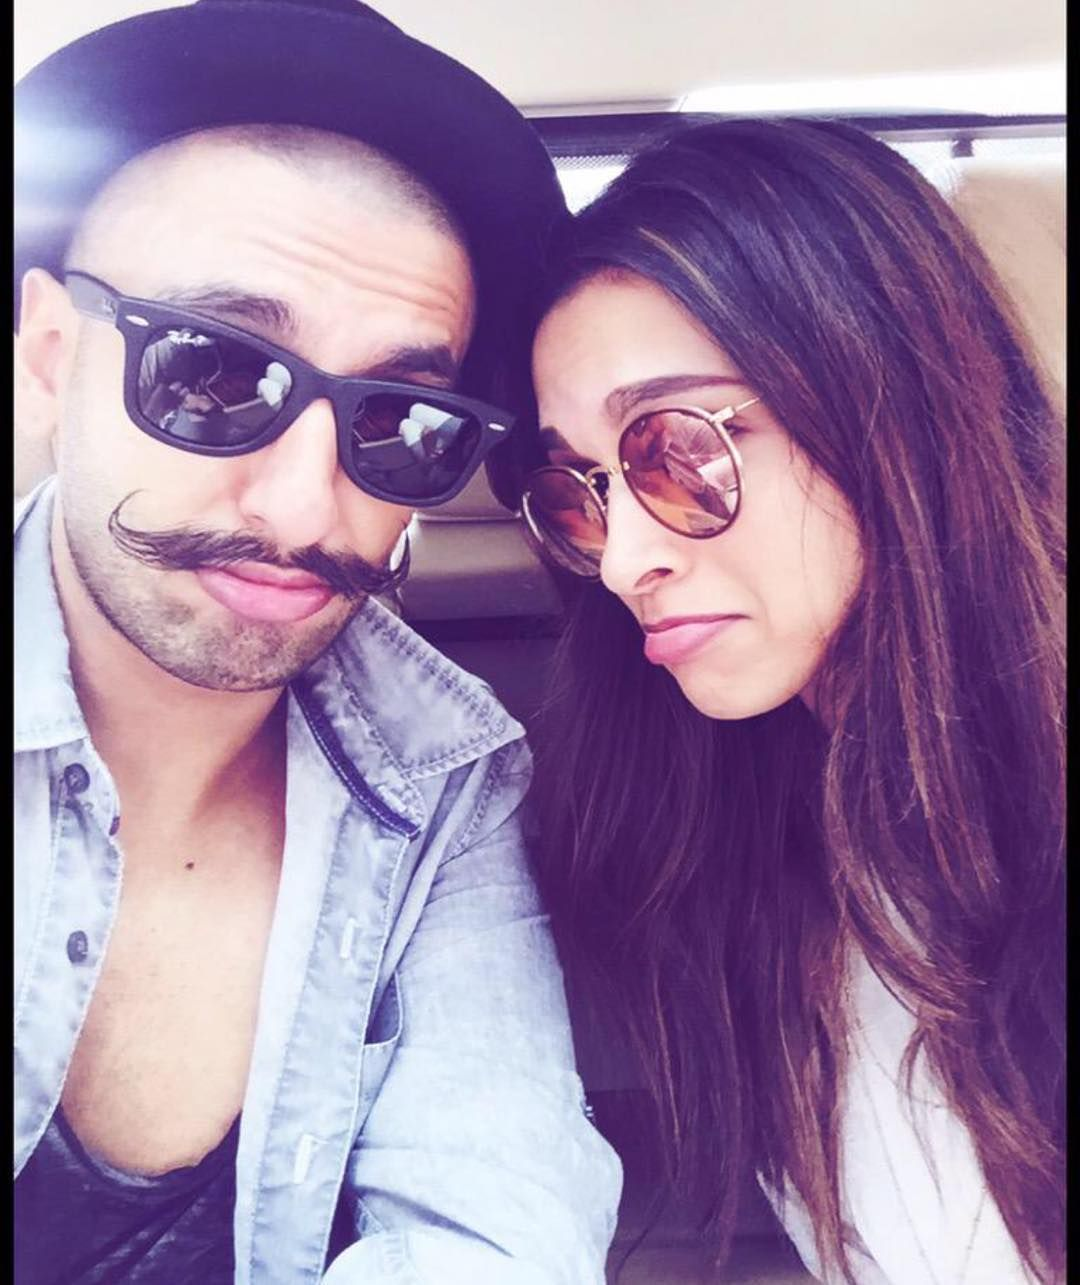 Deepika Padukone On Instagram Selfies Are Too Cute Deepikapadukone Ranveersingh Deepika Ranveer Deepika Padukone Bollywood Couples